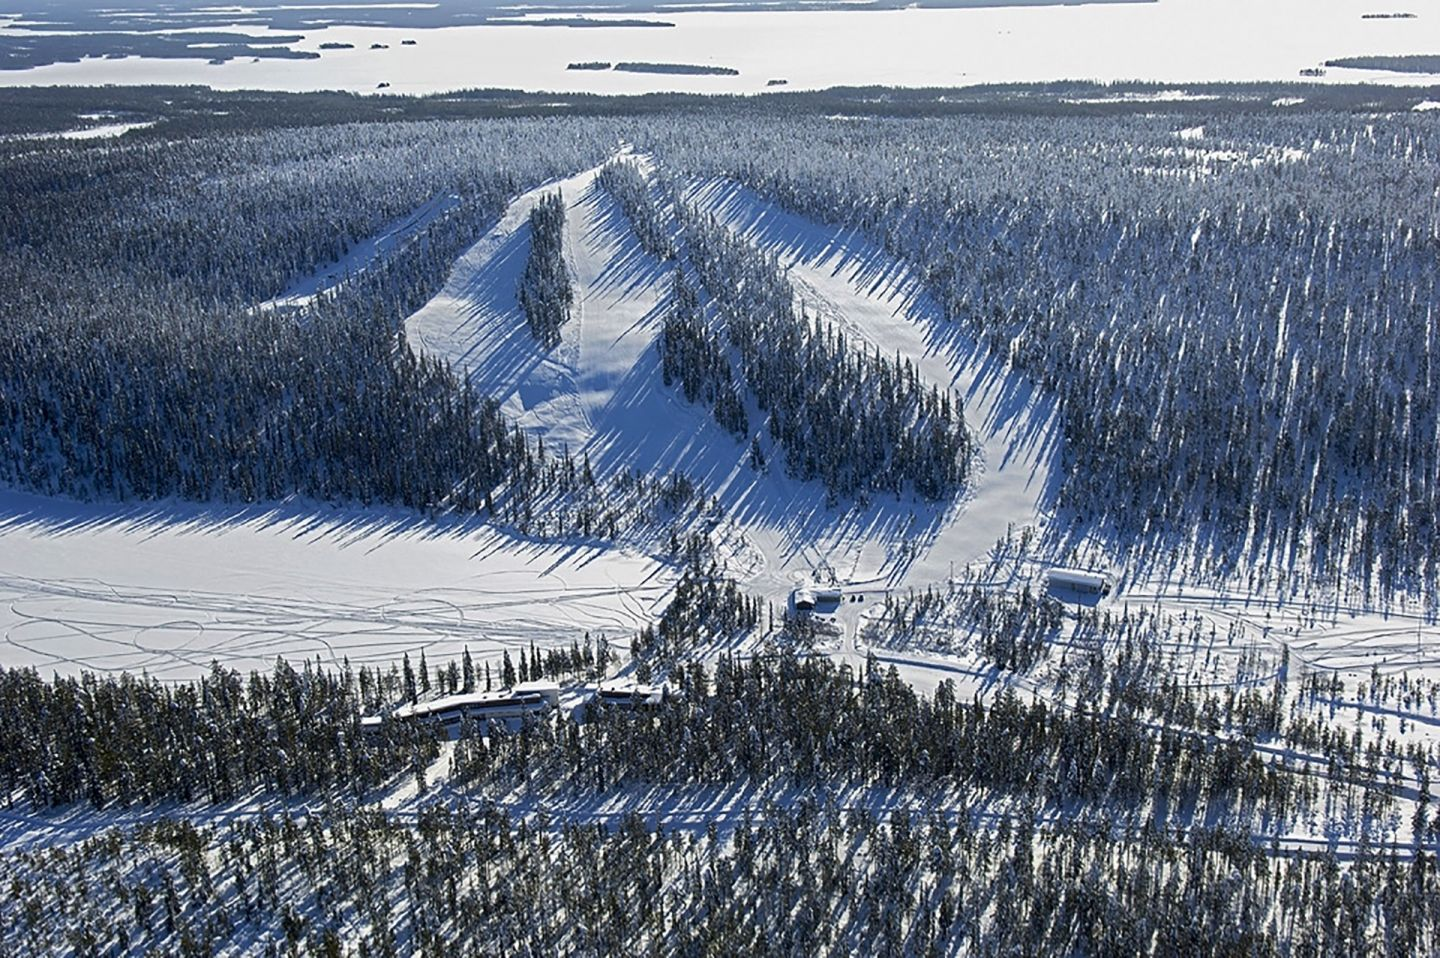 Aerial view of ski center in Kirintövaara, Posio